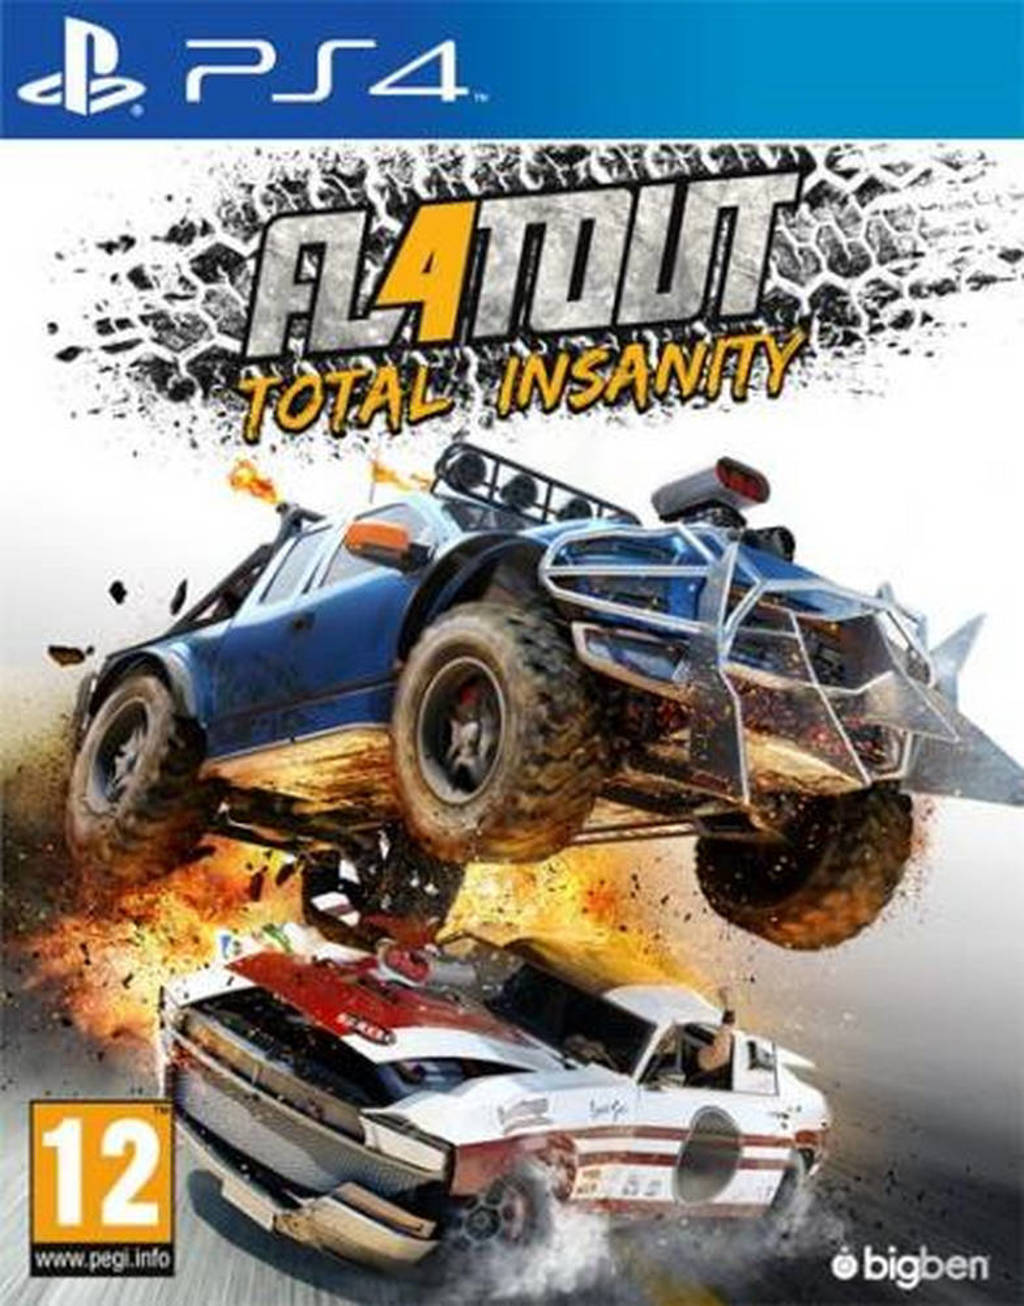 Flatout 4 - Total insanity (PlayStation 4)